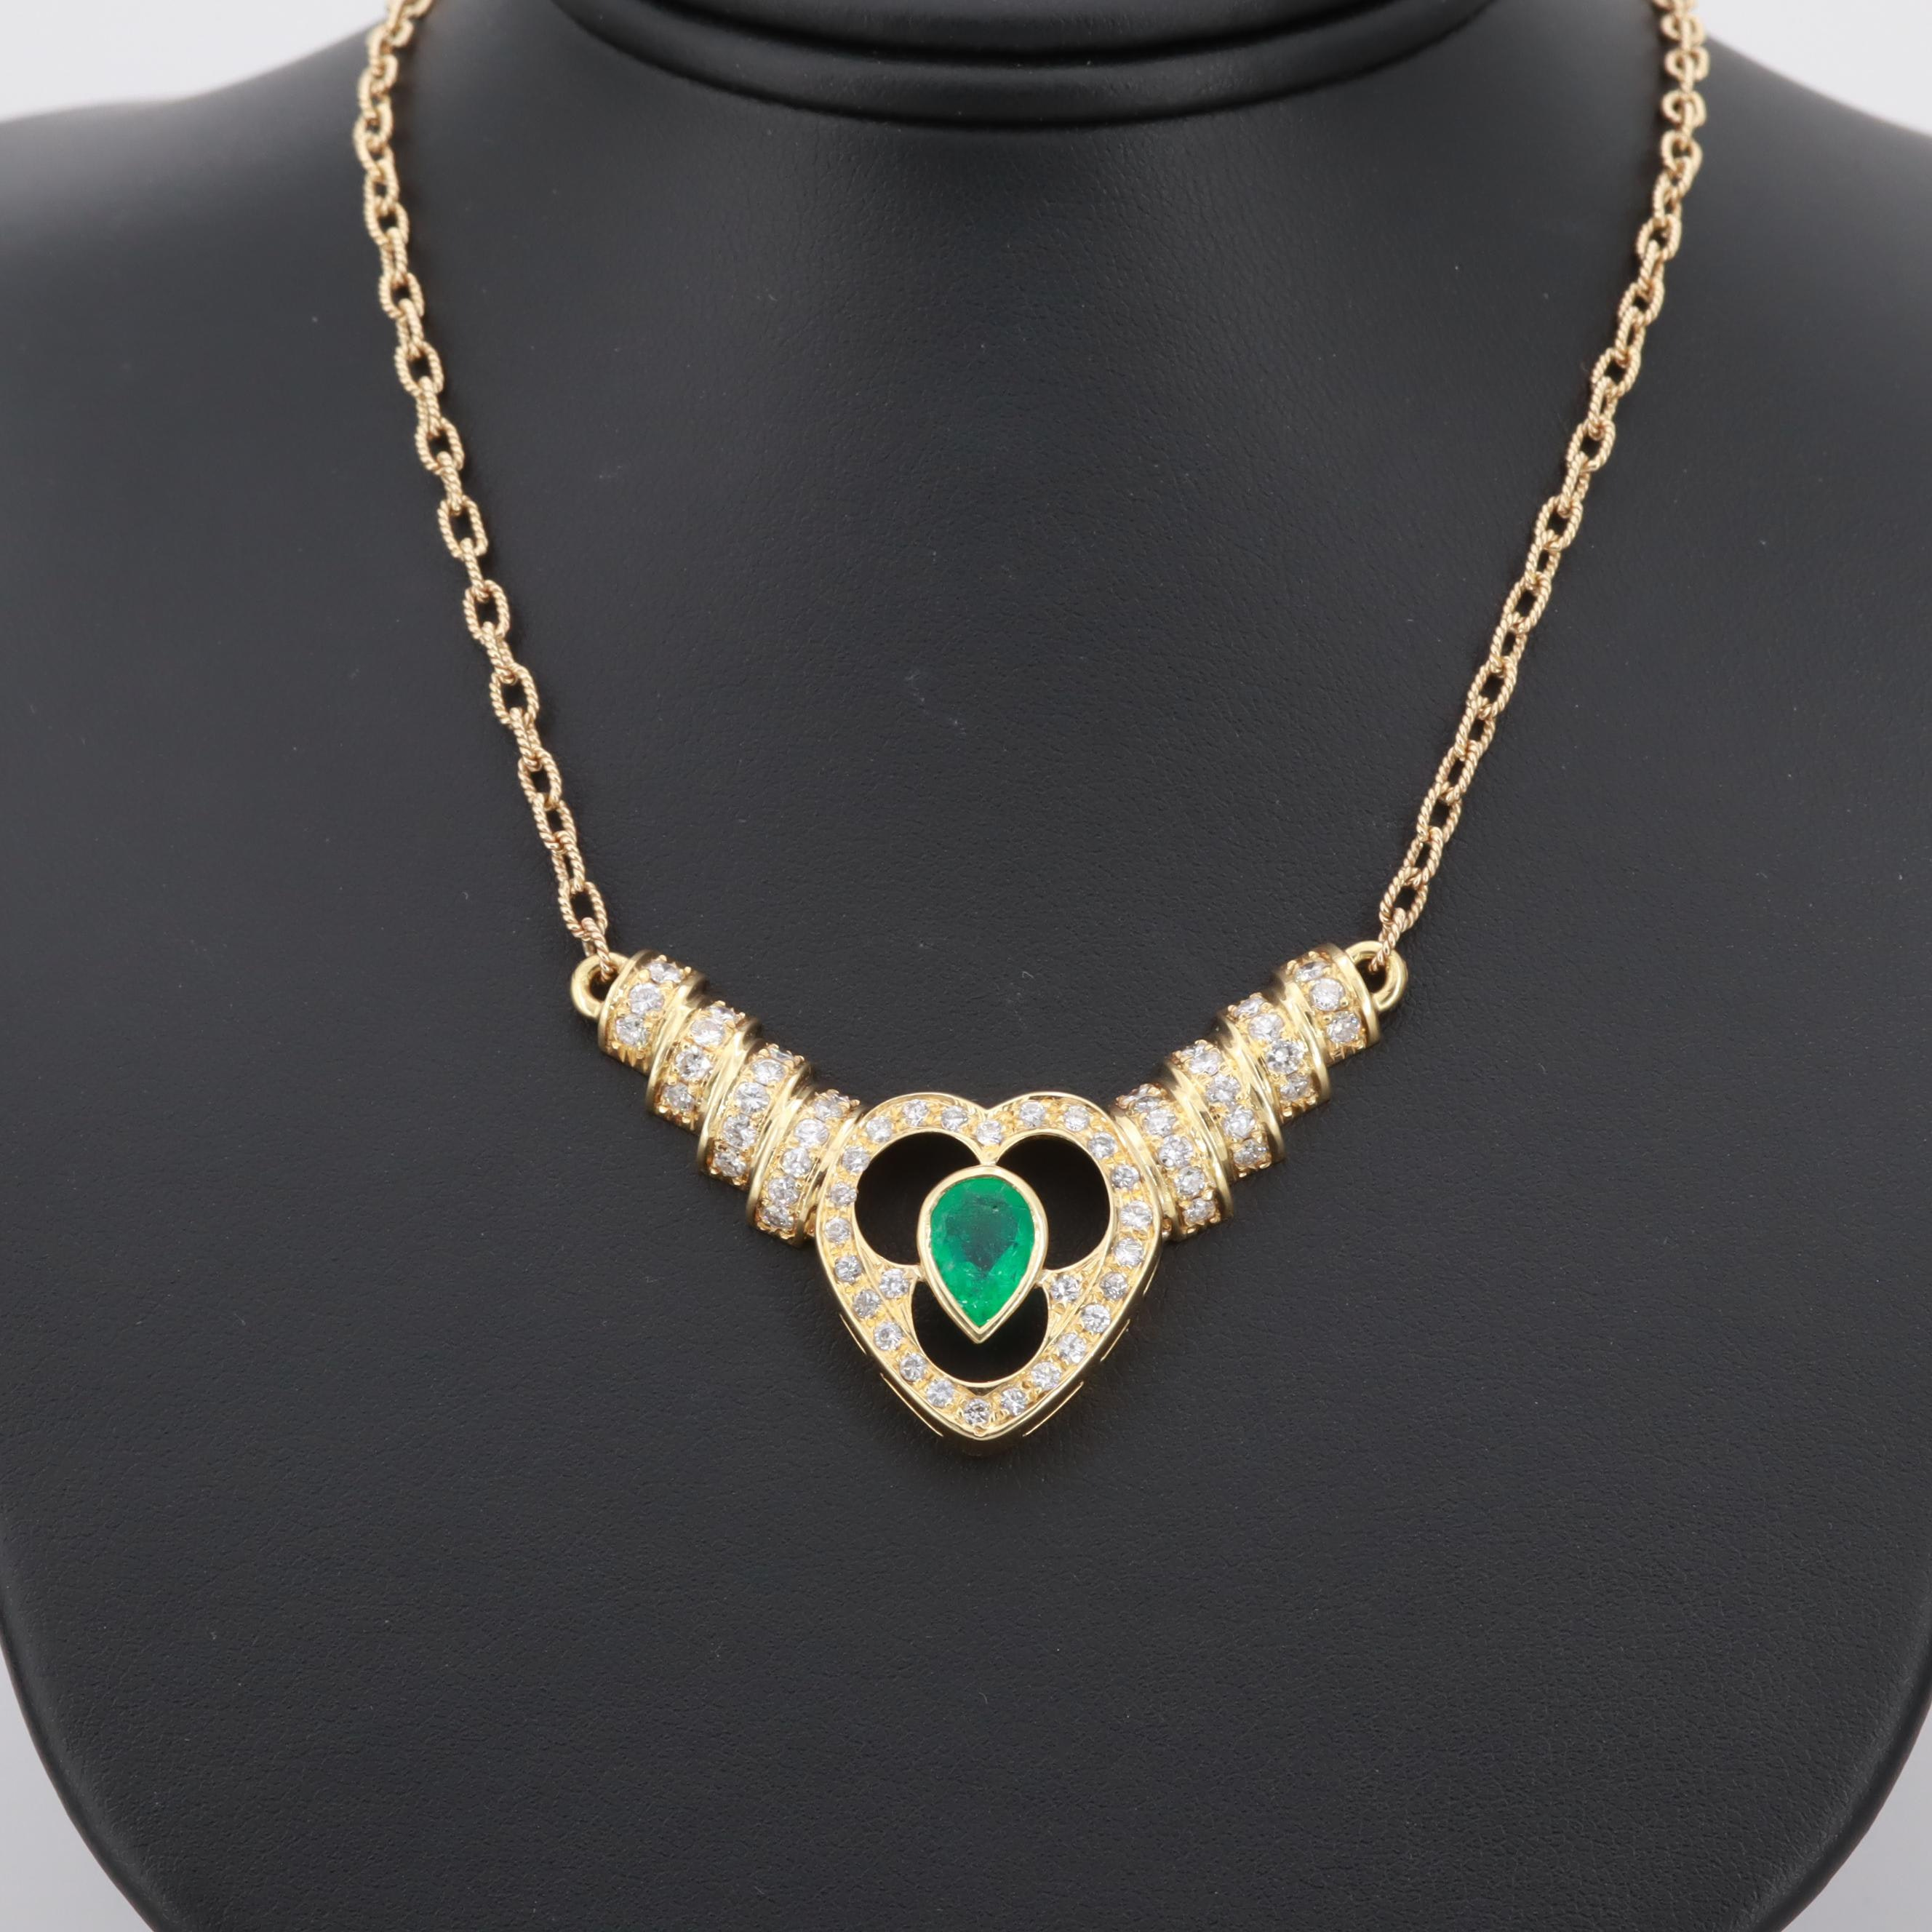 14K and 18K Yellow Gold 1.32 CT Emerald and 1.79 CTW Diamond Heart Necklace